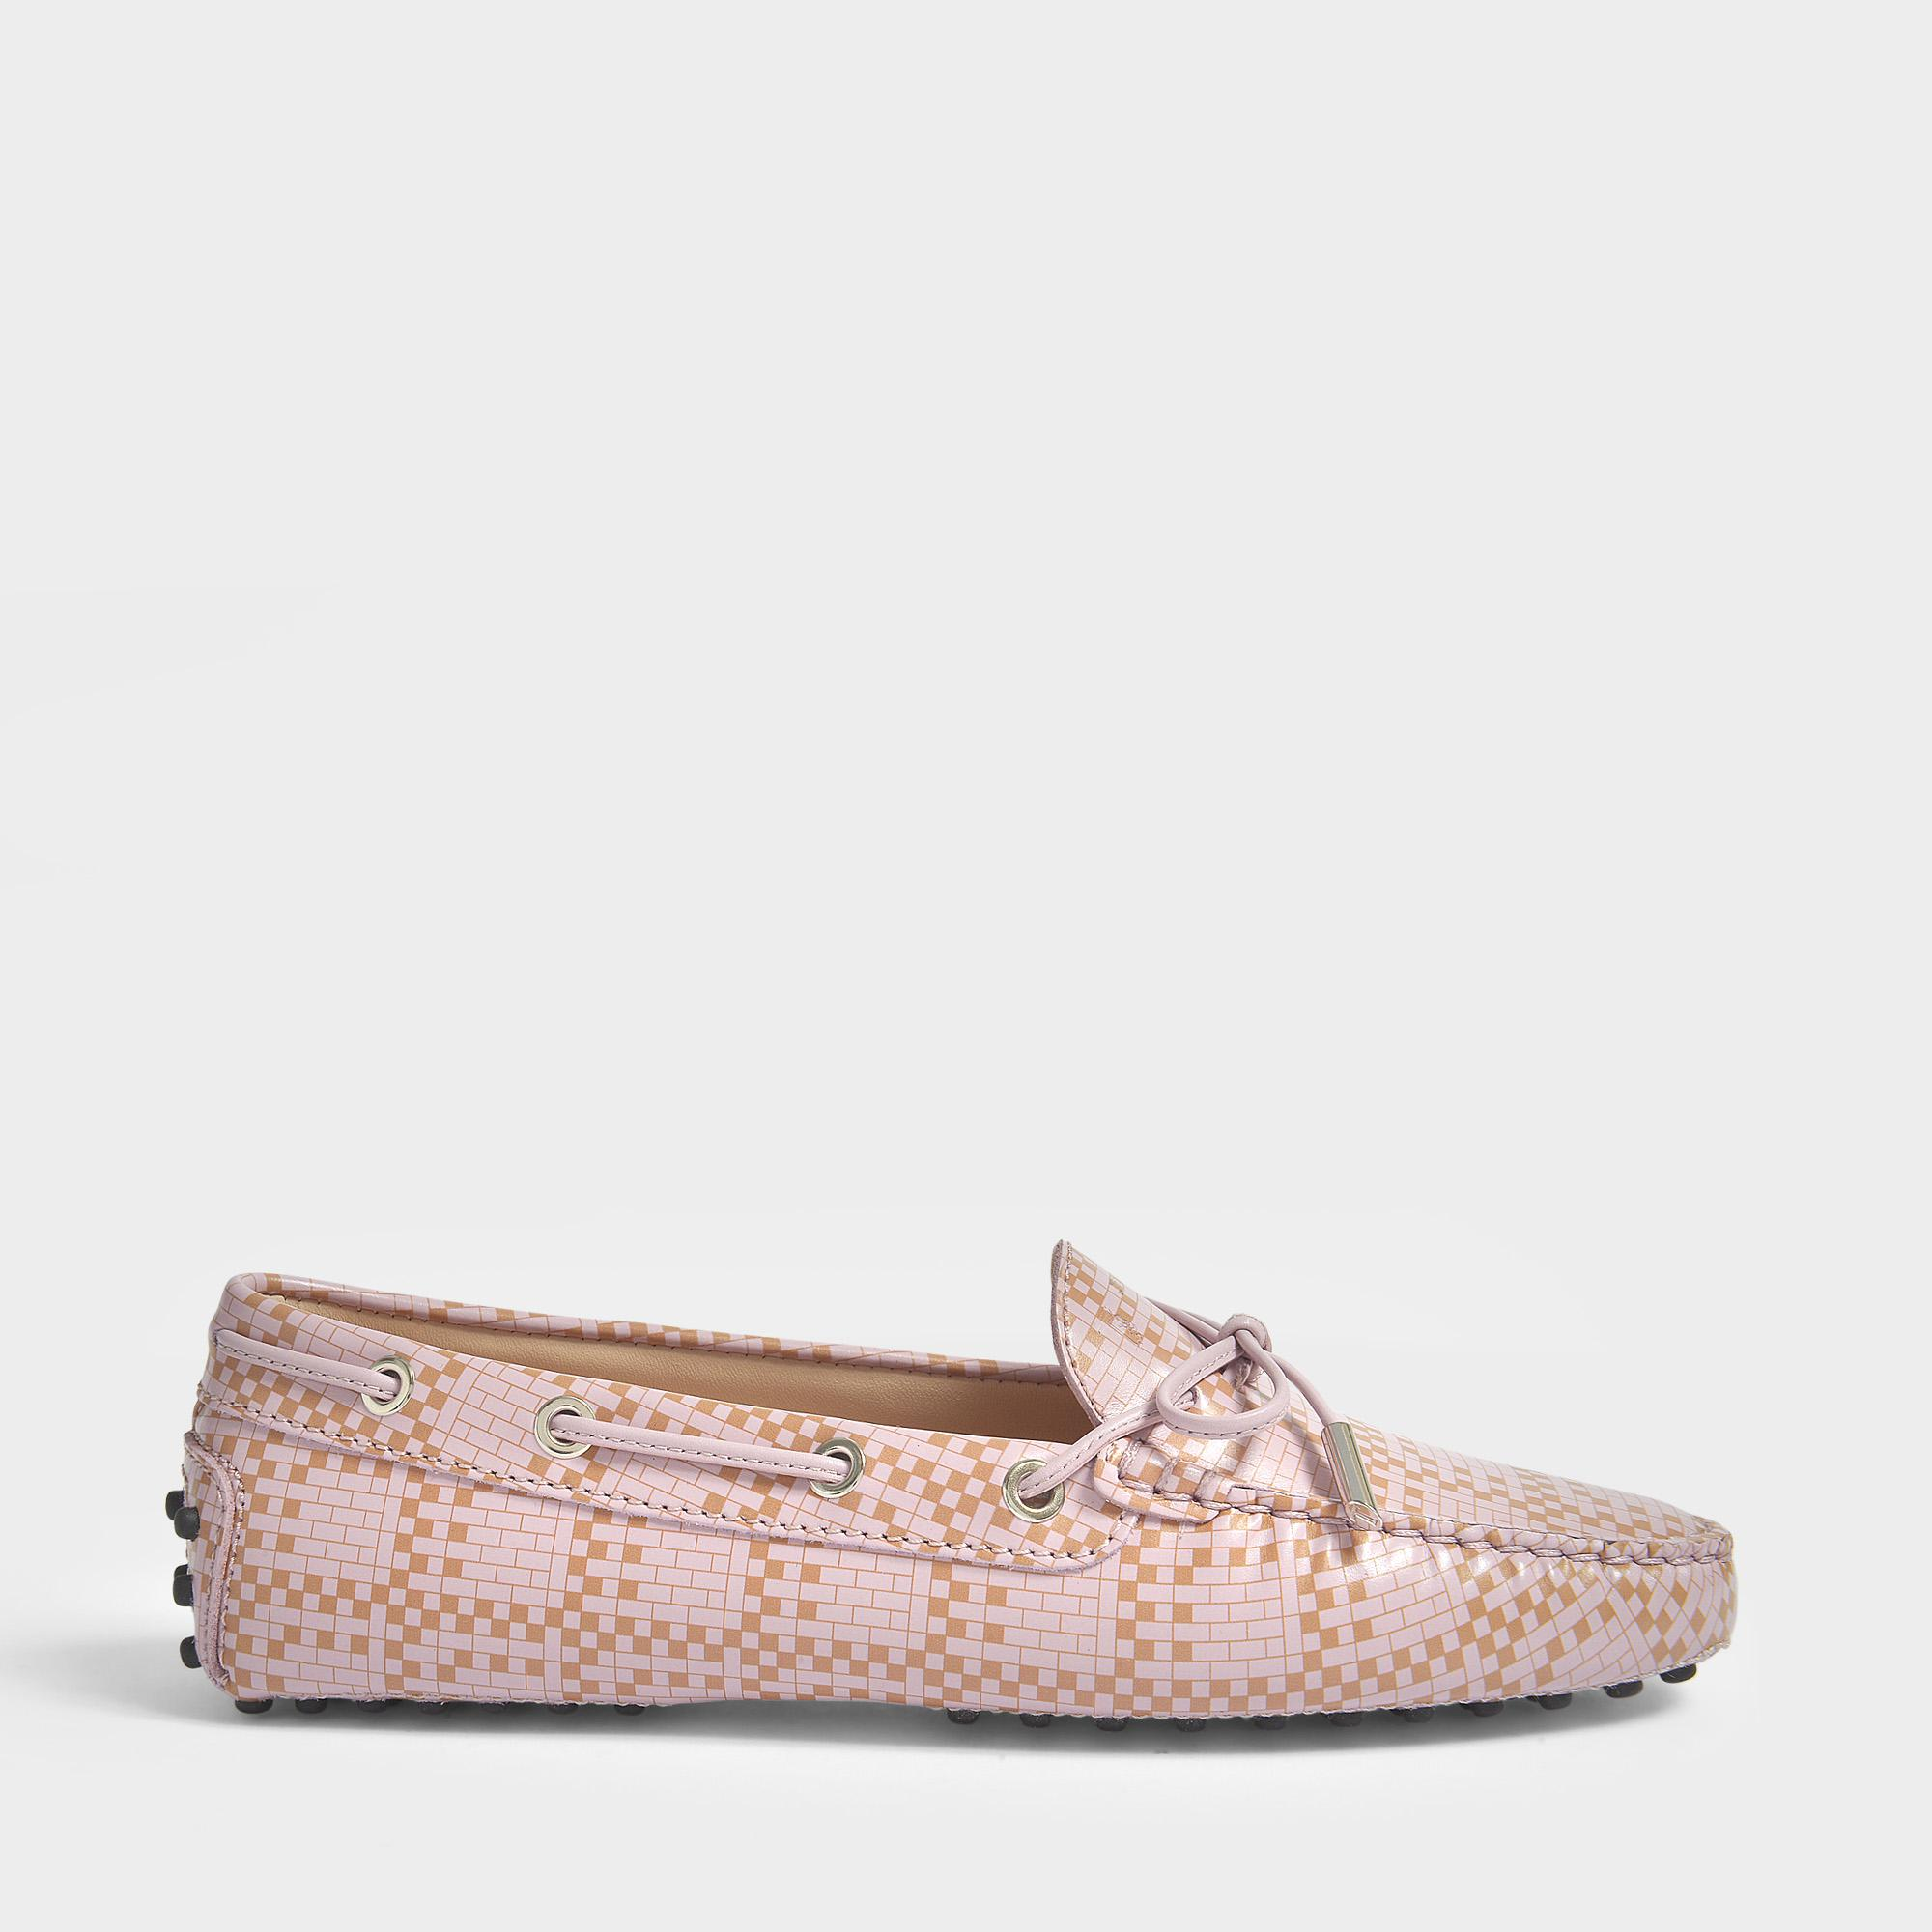 Gommino Scooby Doo Moccasins in Pink Printed Calfskin Tod's Vk1zFycN